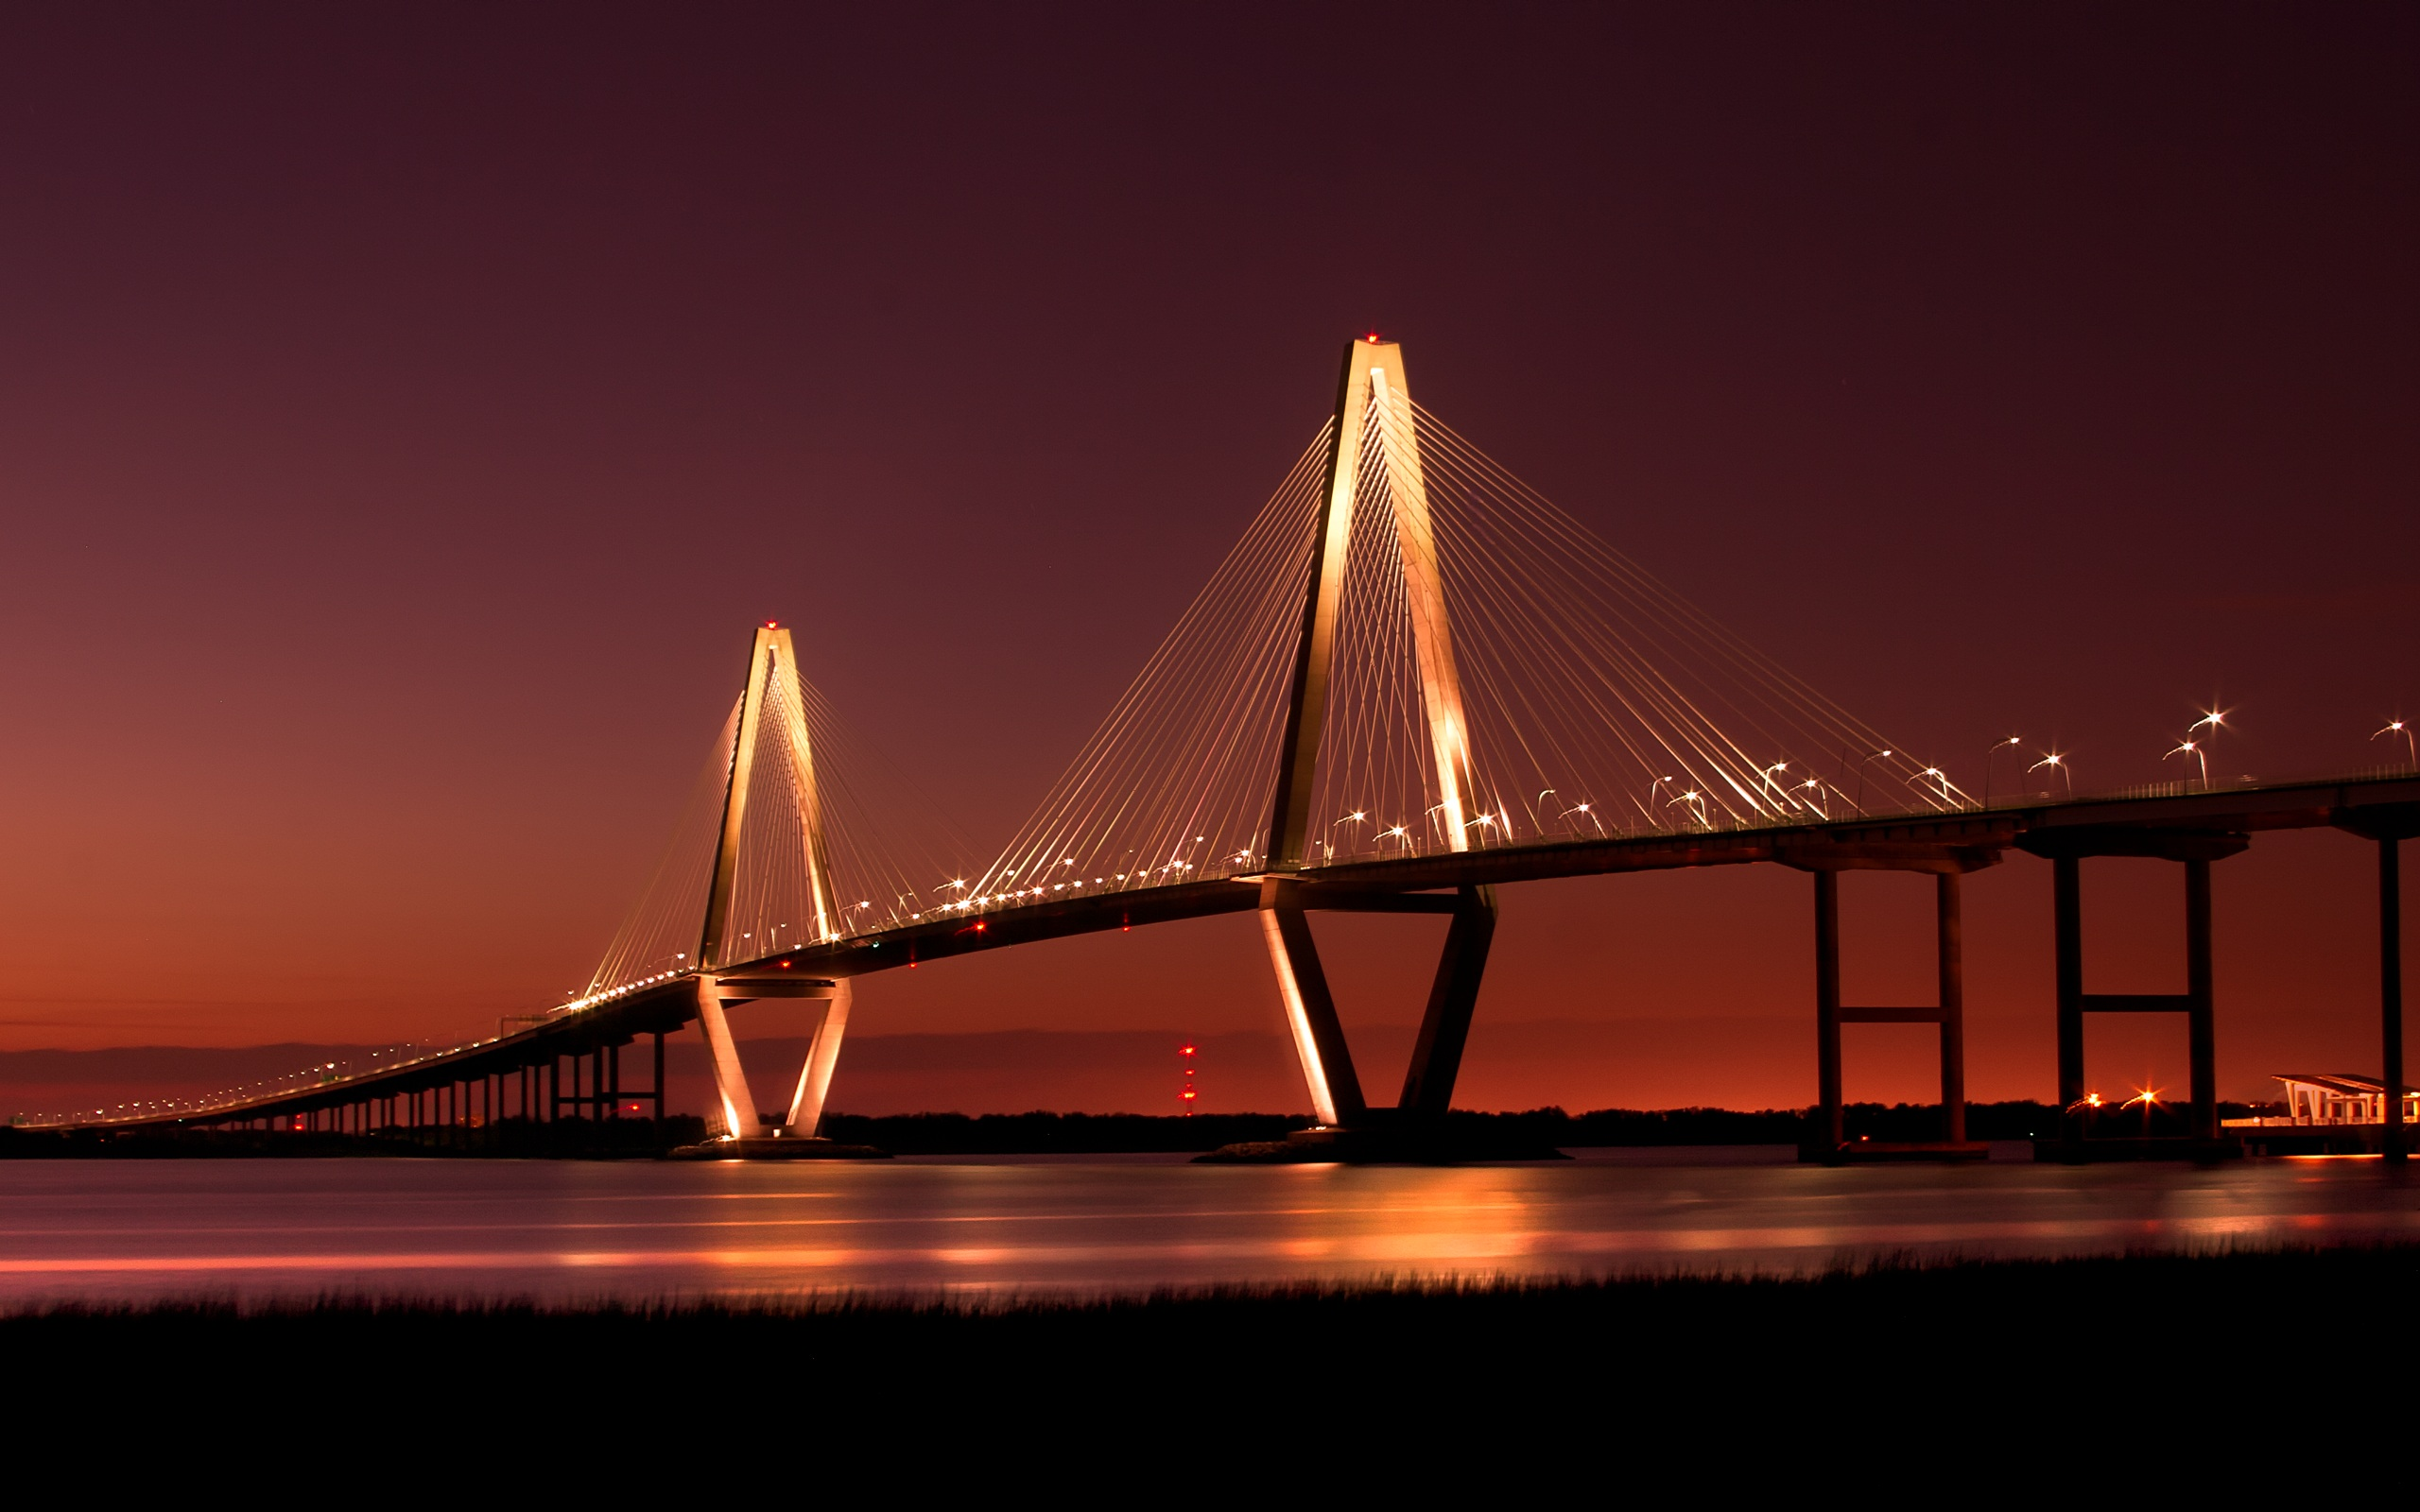 HD Wallpapers Beautiful Bridges wallpaper free - Cooper River Bridge